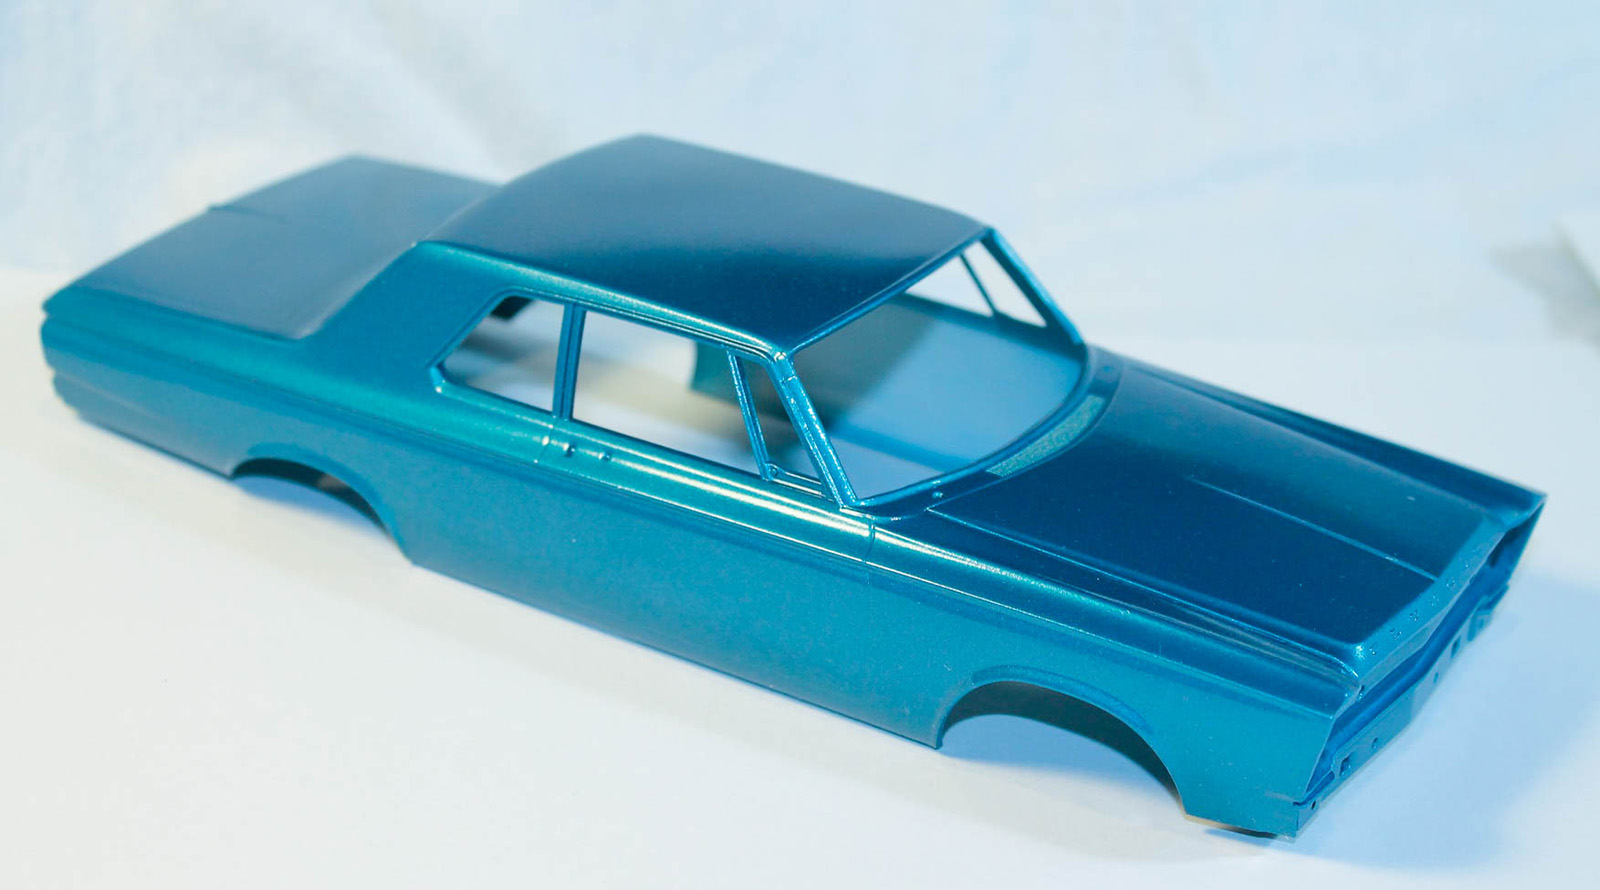 Moebius models 1218 1 25 1965 plymouth belvedere build image 03